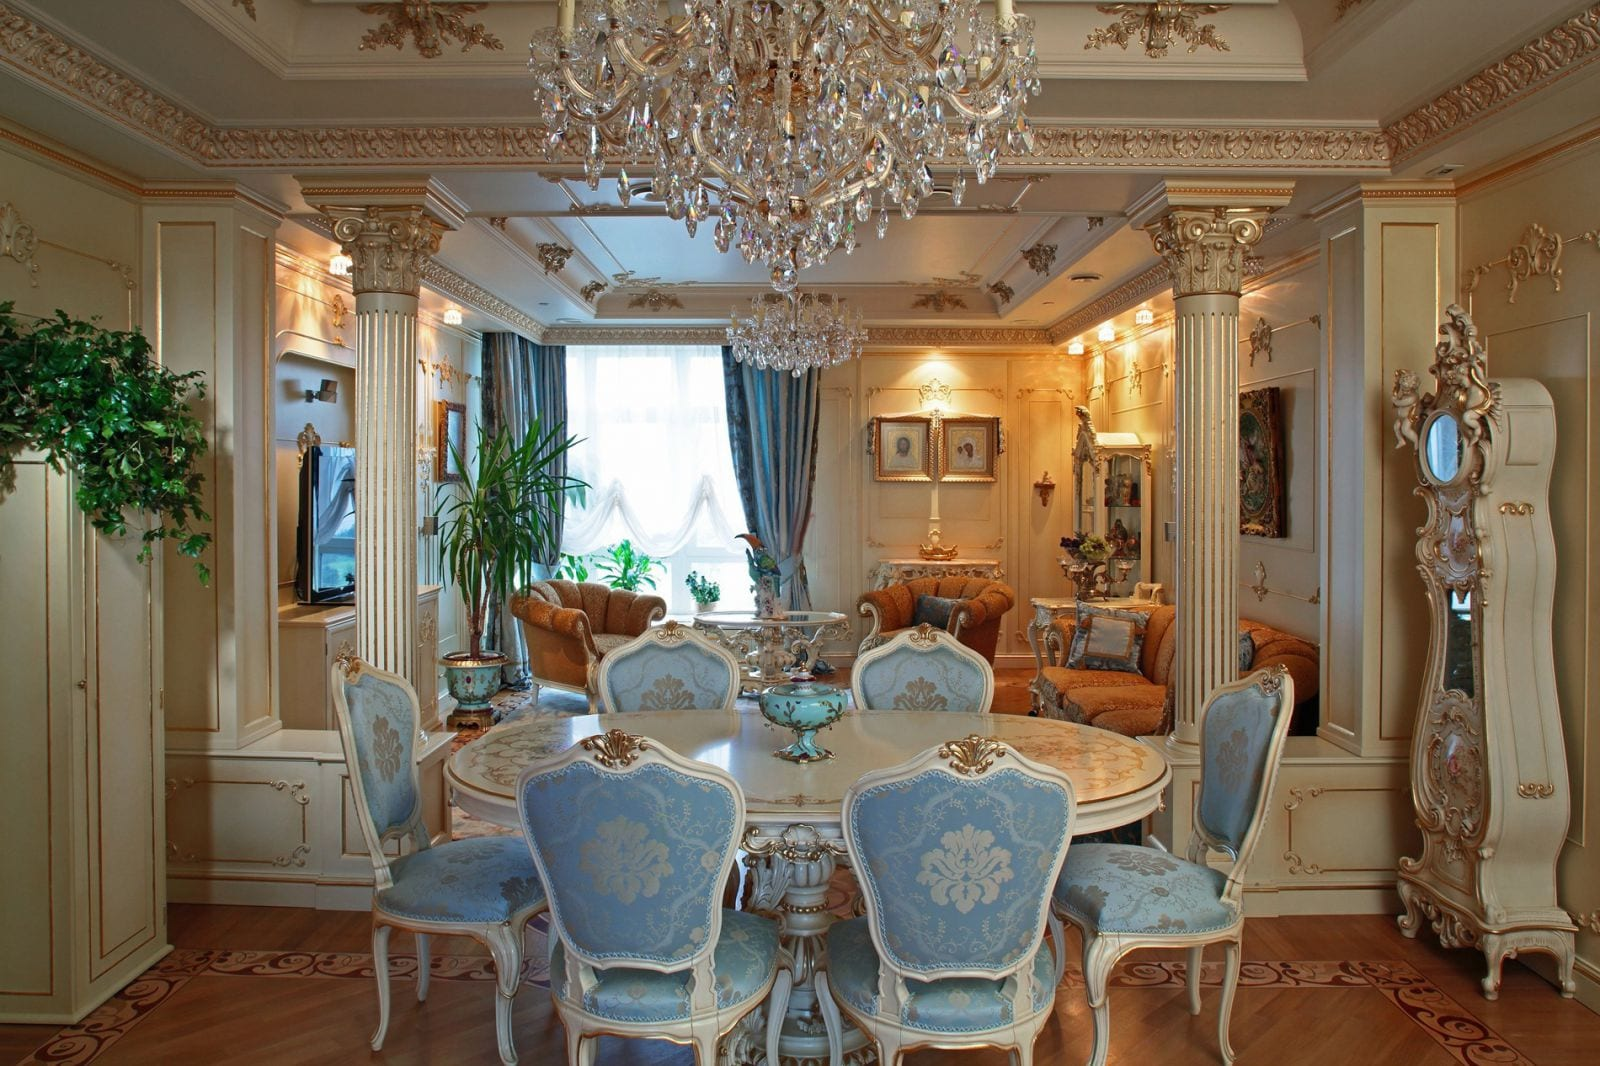 Baroque Living Room: Tips for Creating Chic Room at Home. Blue carved chairs